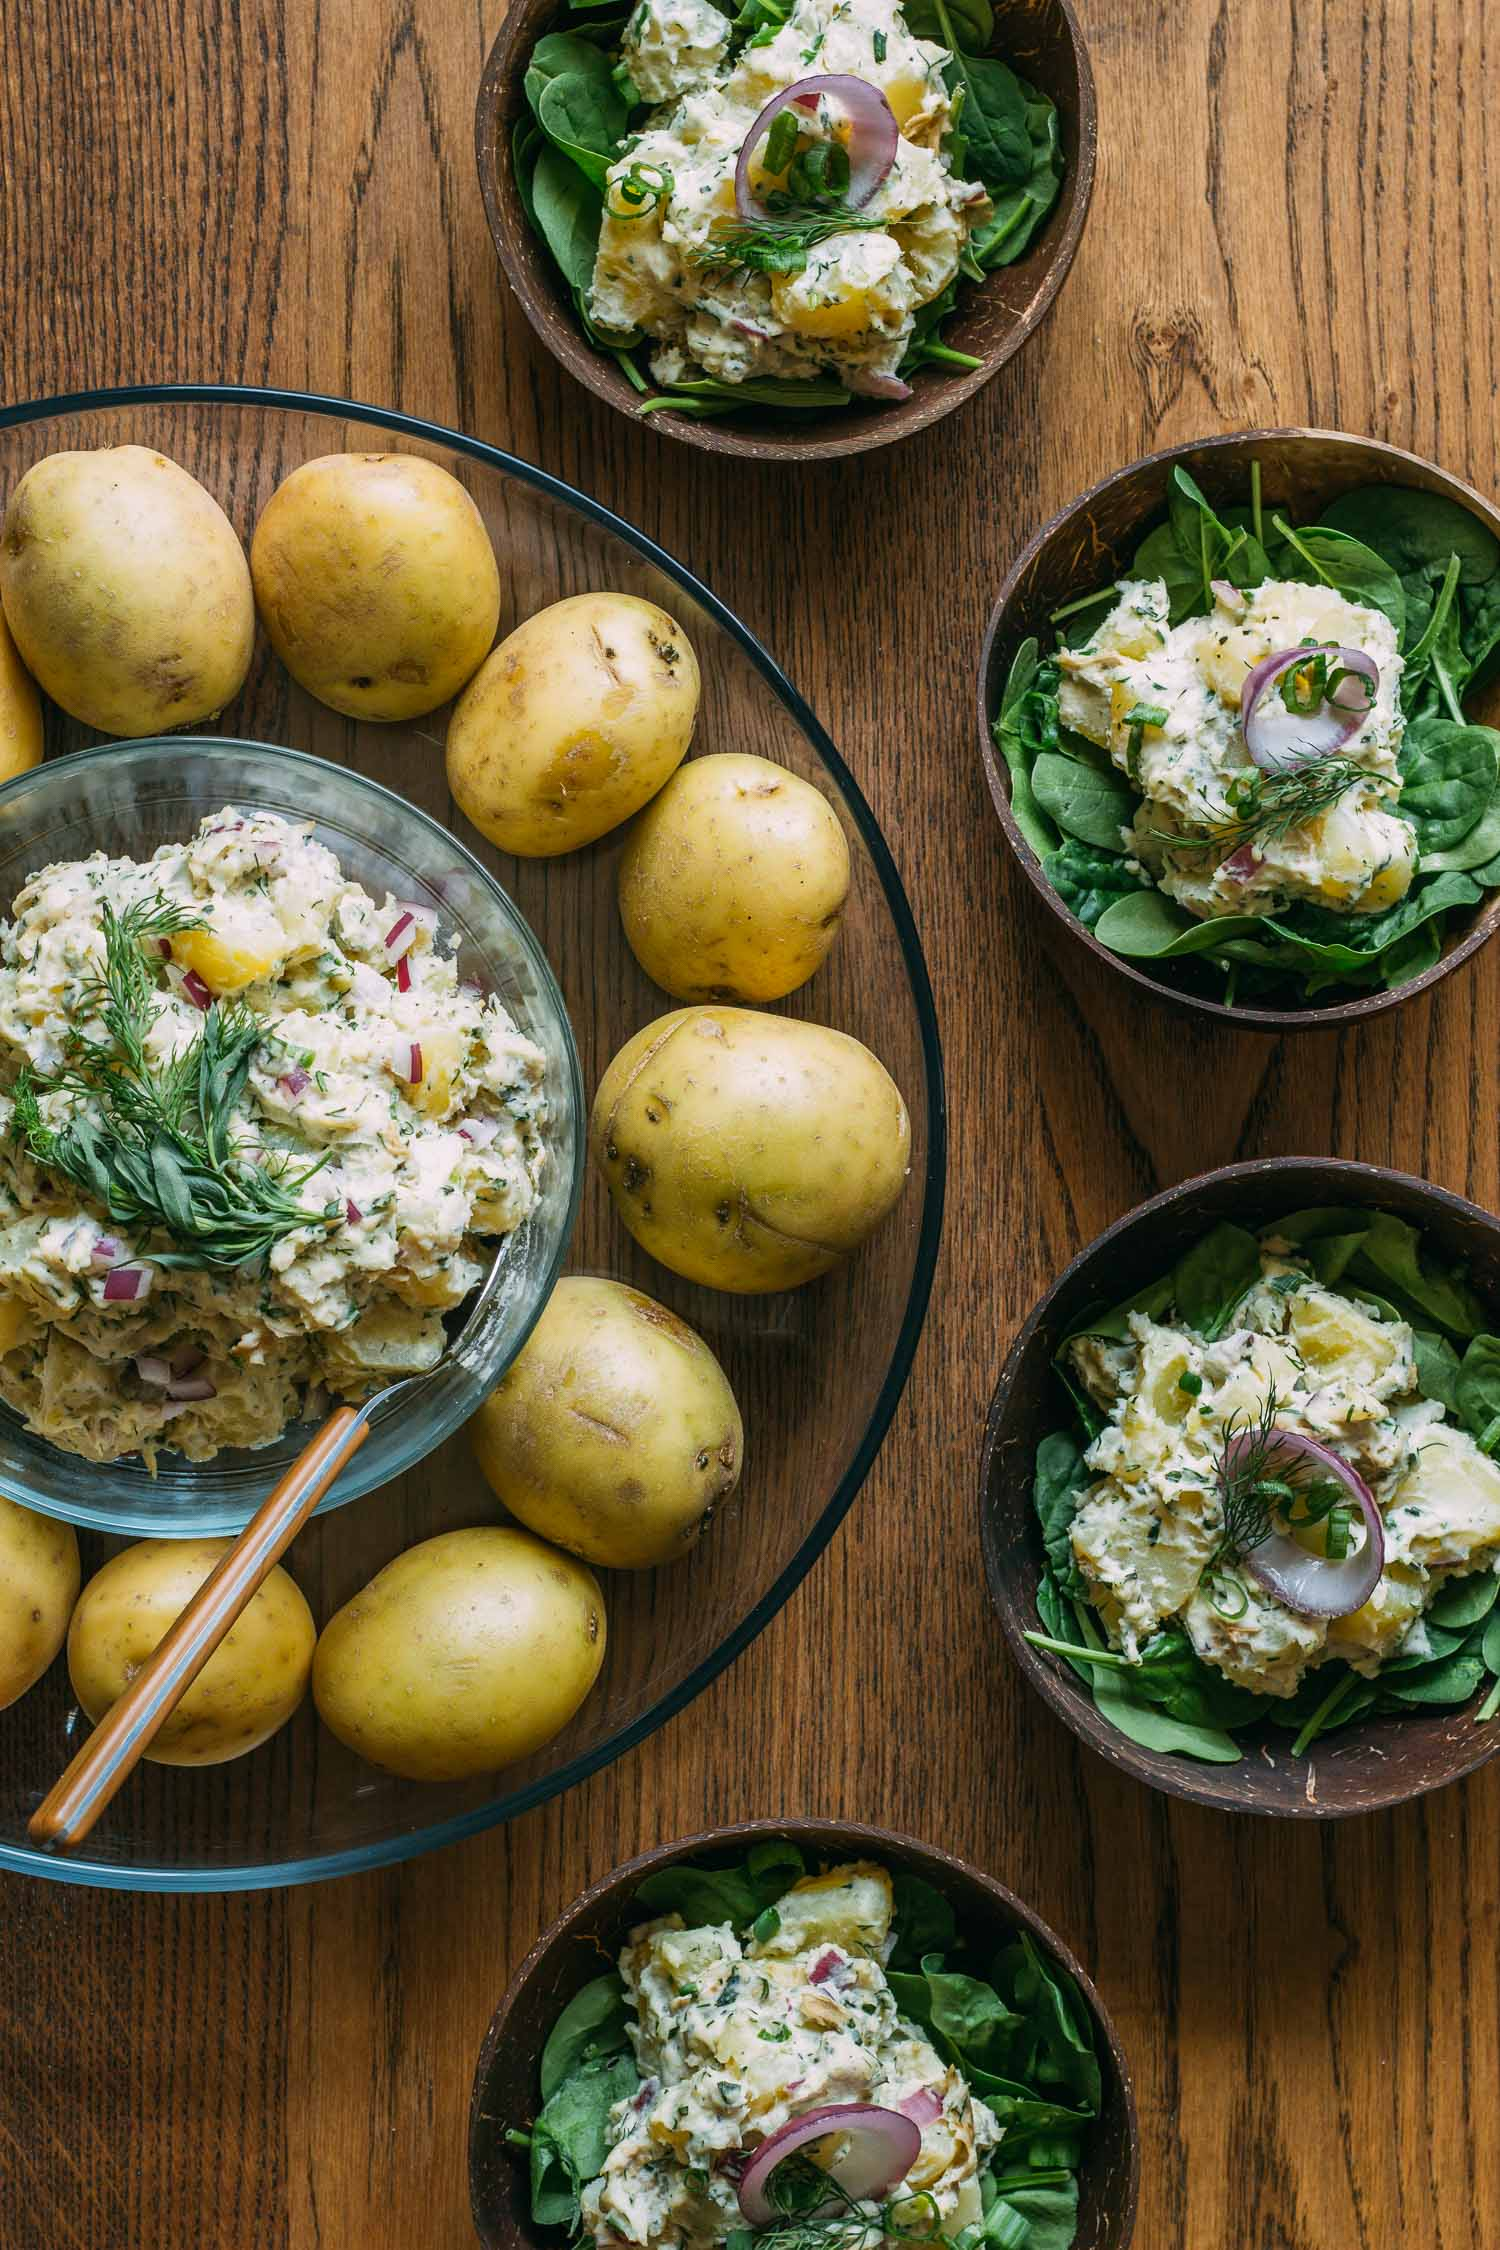 Tarragon Dill Potato Salad #potato #salad #recipe #4th #July #wfpb #vegan